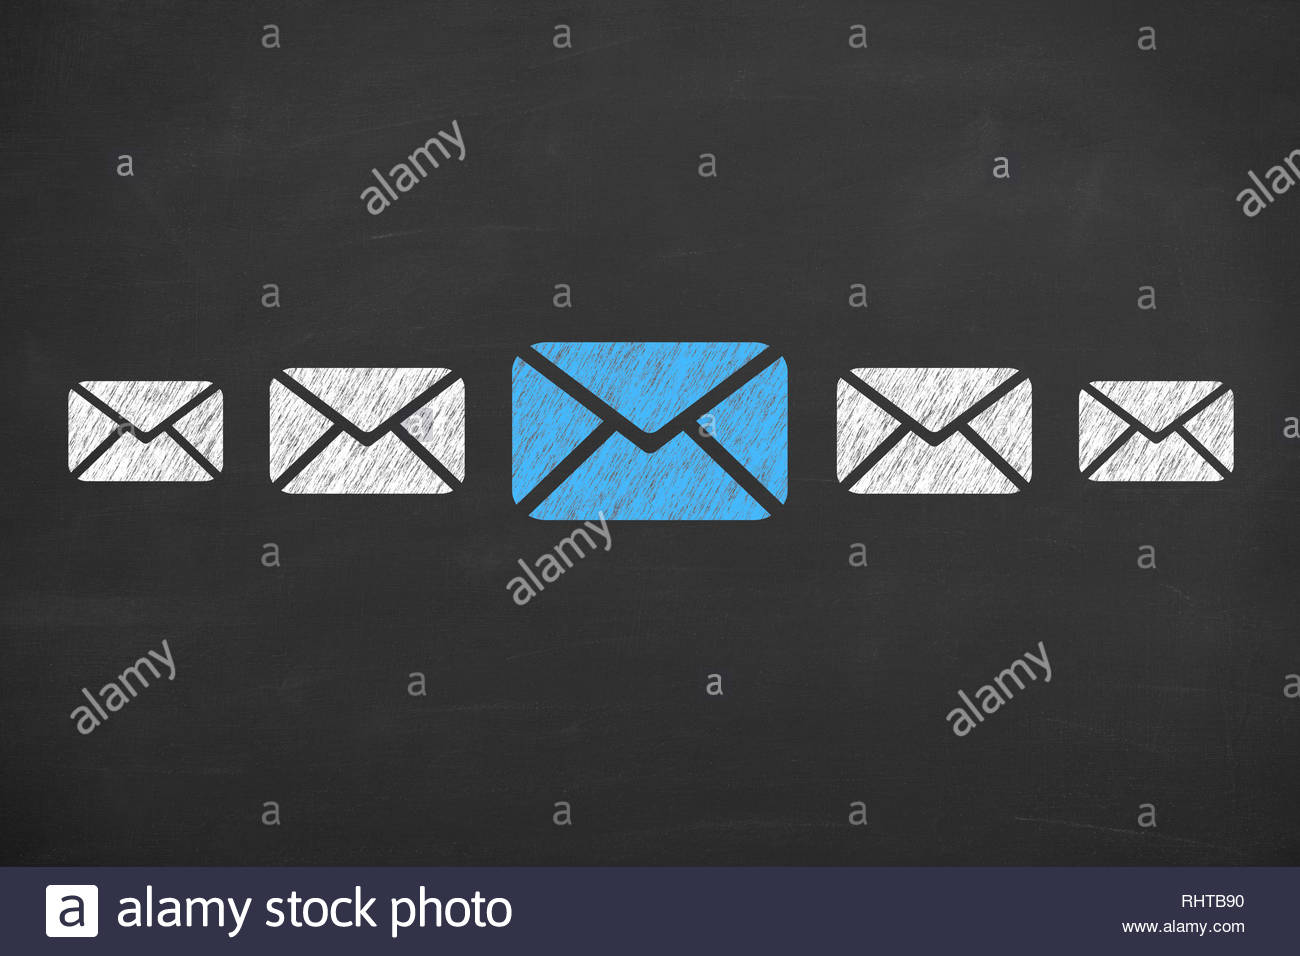 Email concepts on blackboard background - Stock Image